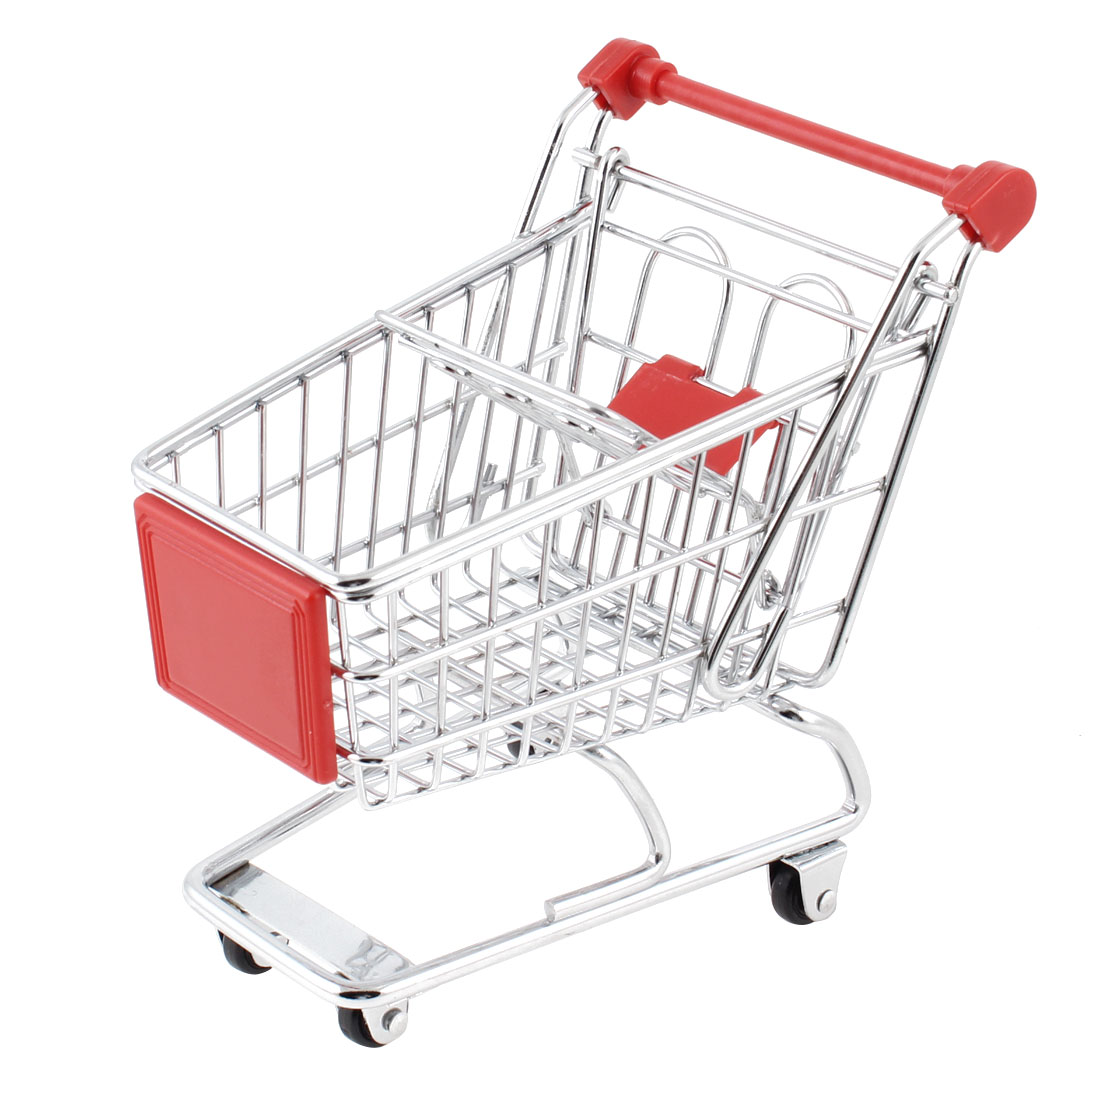 Movable Stainless Steel Mini-Shopping Cart Model Toy Red Silver Tone